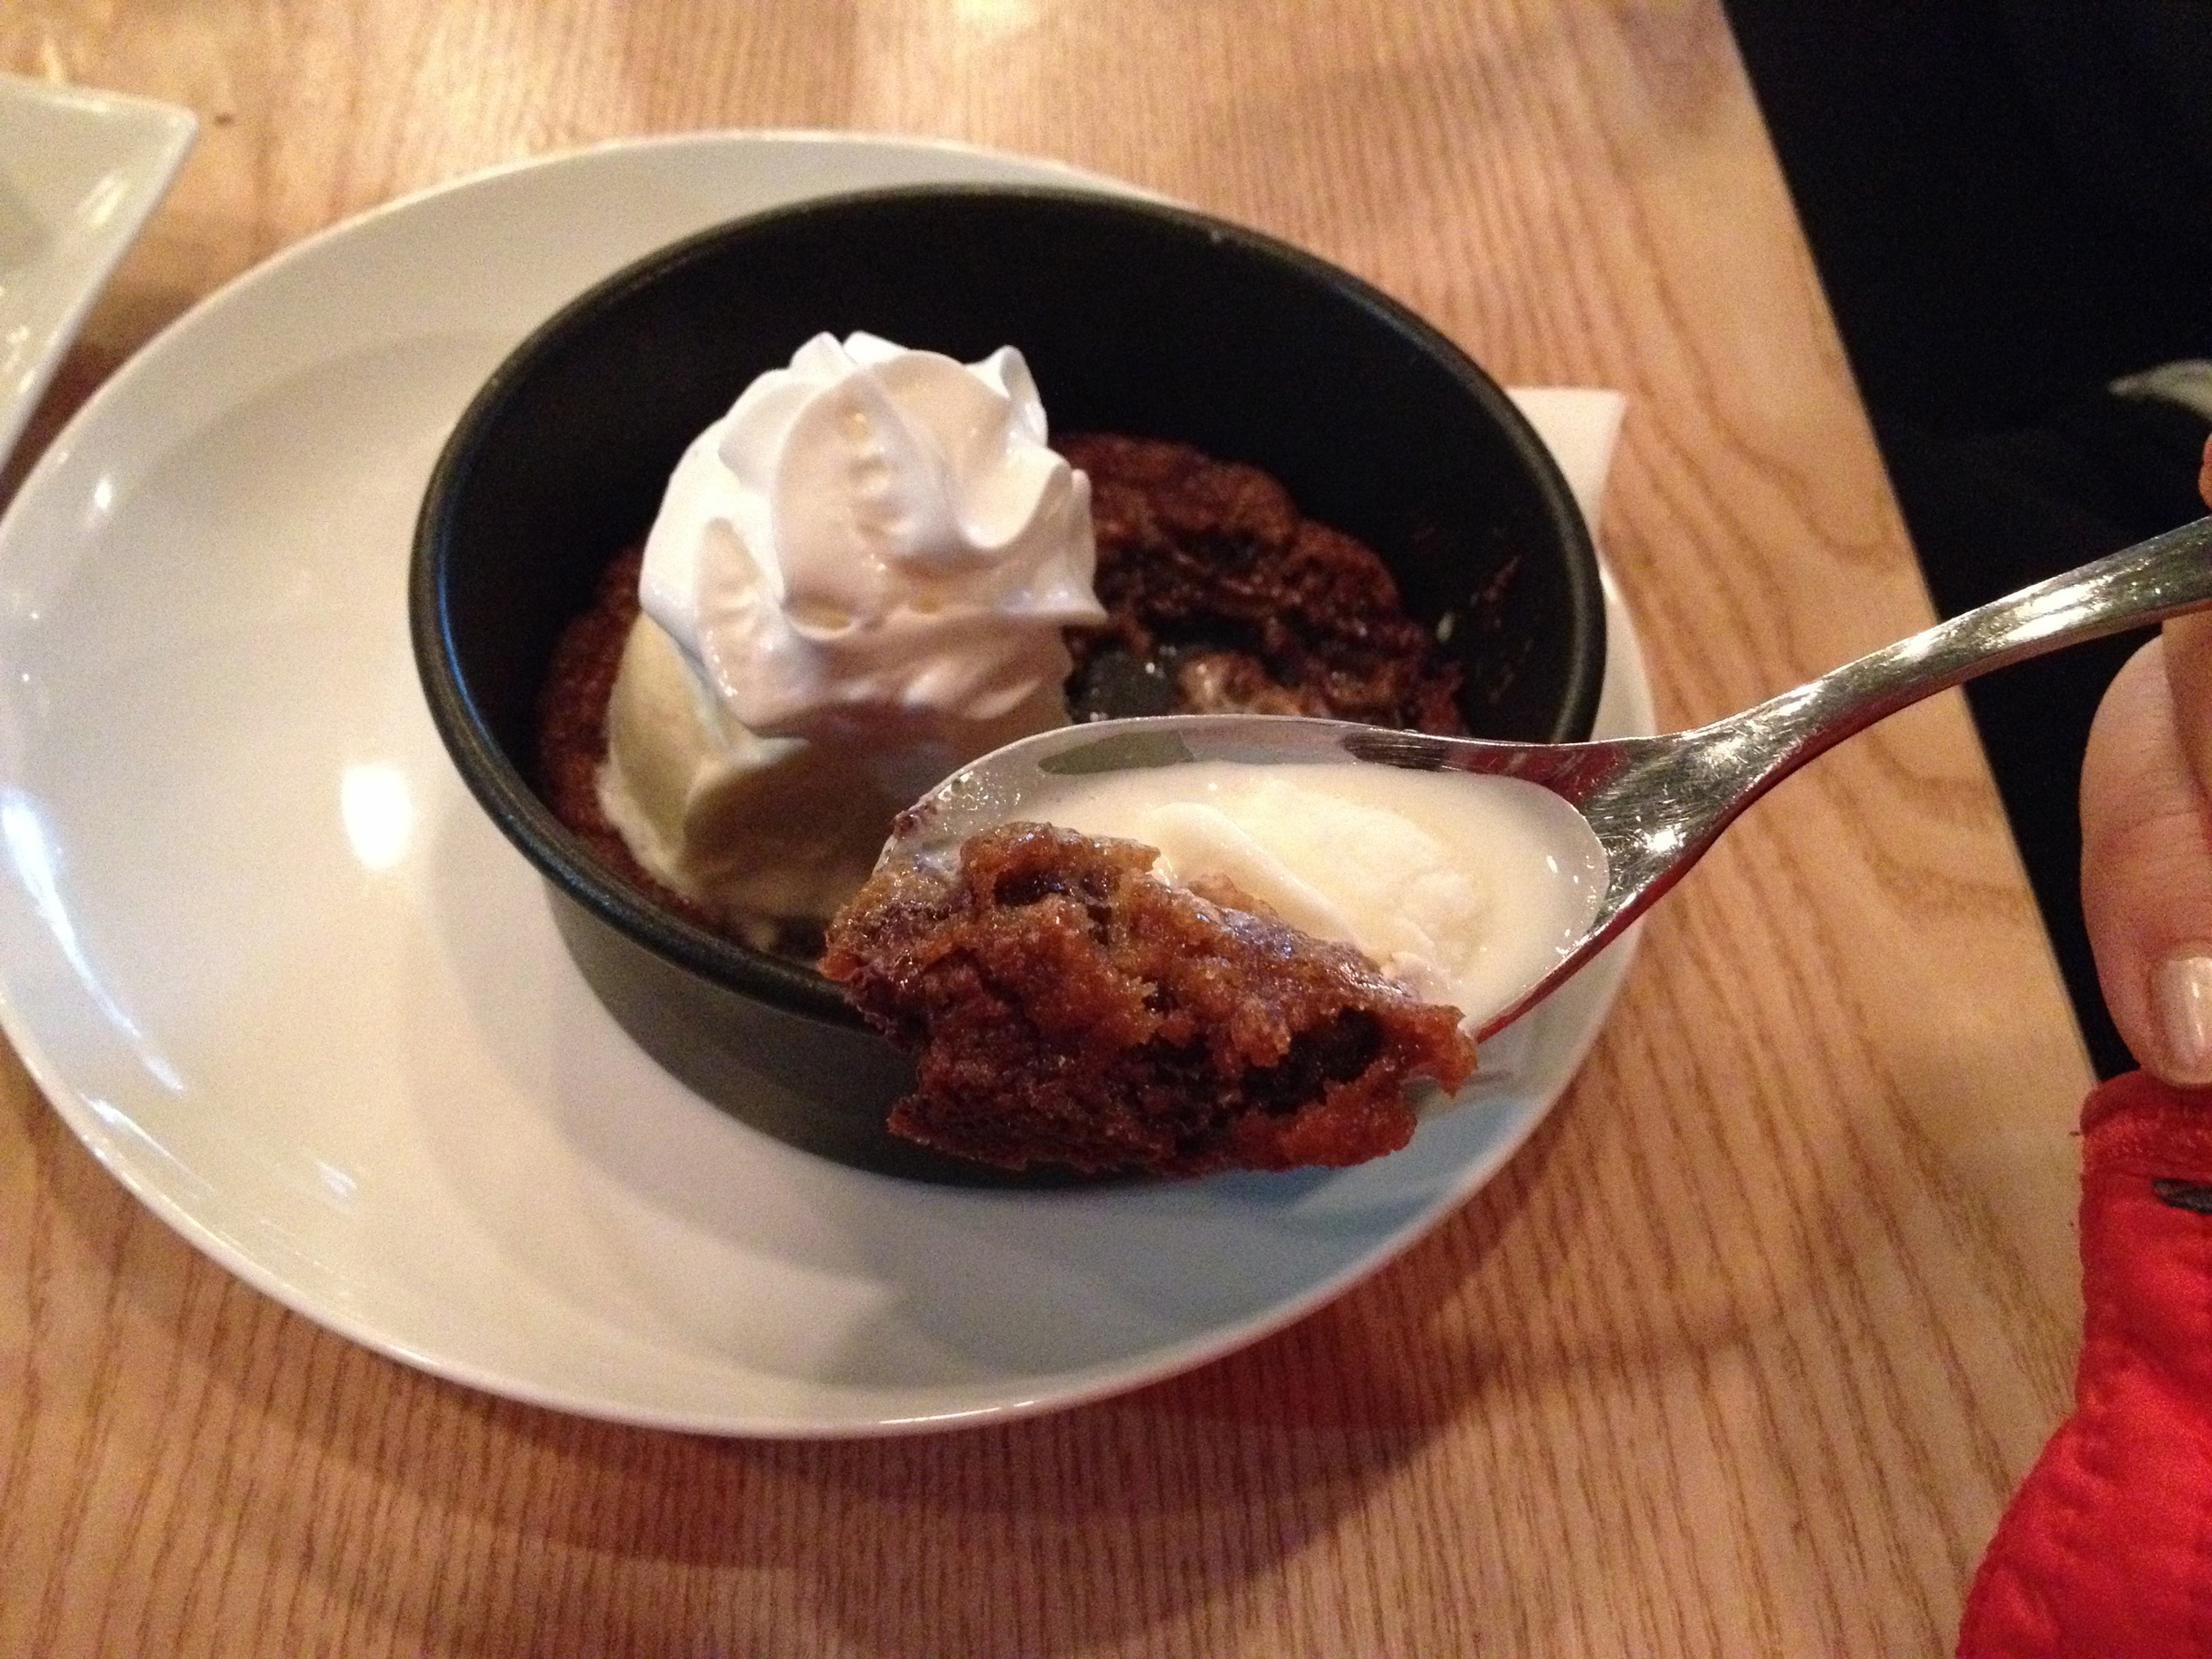 The contrasts between the hot cookie and the cool vanilla ice-cream is perfect!